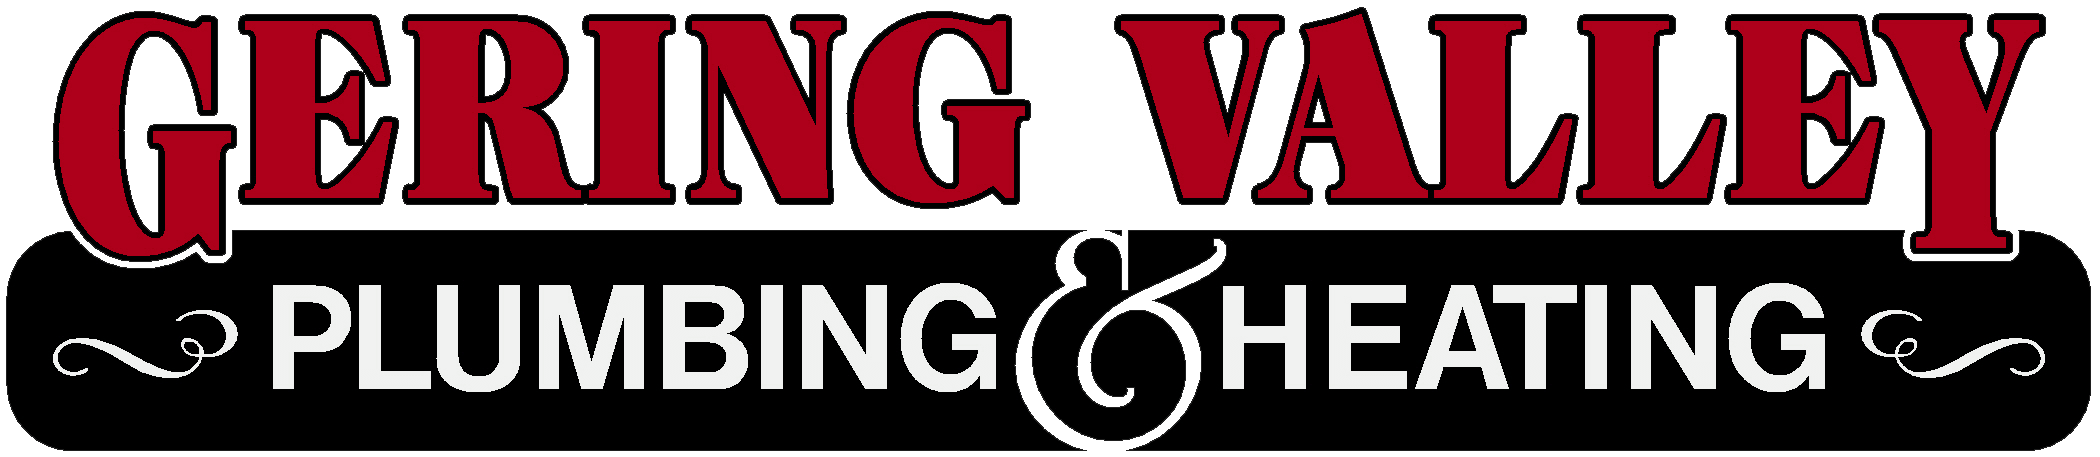 See what makes Gering Valley Plumbing & Heating your number one choice for Ductless Air Conditioning repair in Scottsbluff NE.